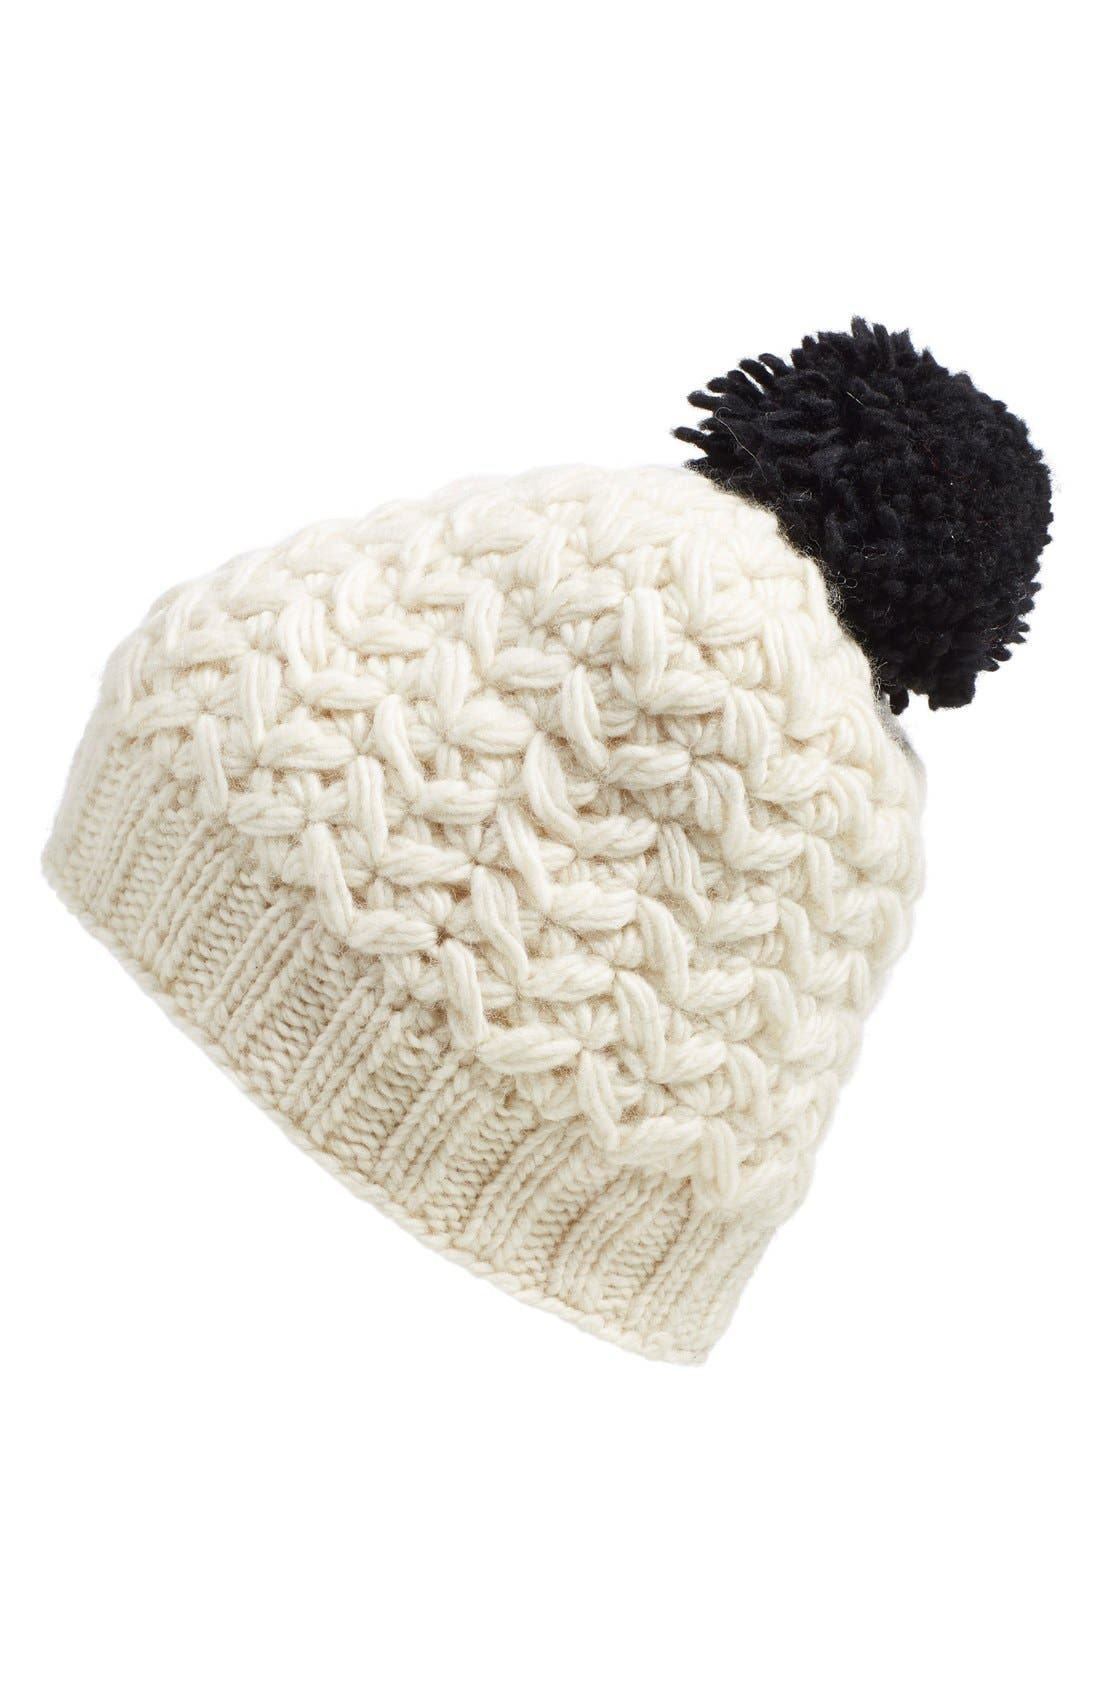 Main Image - Nirvanna Designs 'Black Pom' Knit Beanie